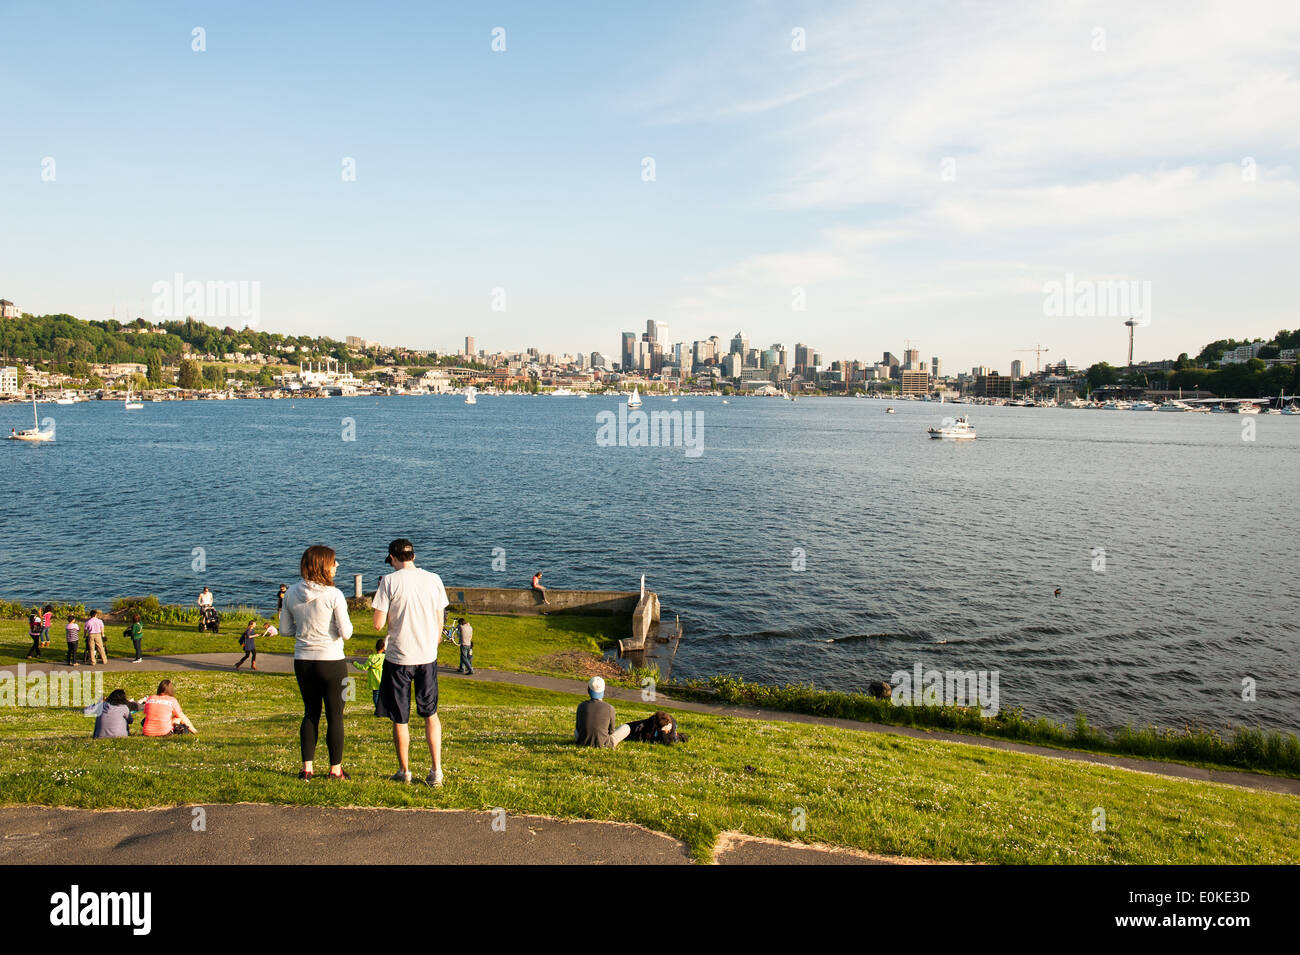 Gas Works Park overlooks Lake Union and the Seattle skyline. - Stock Image